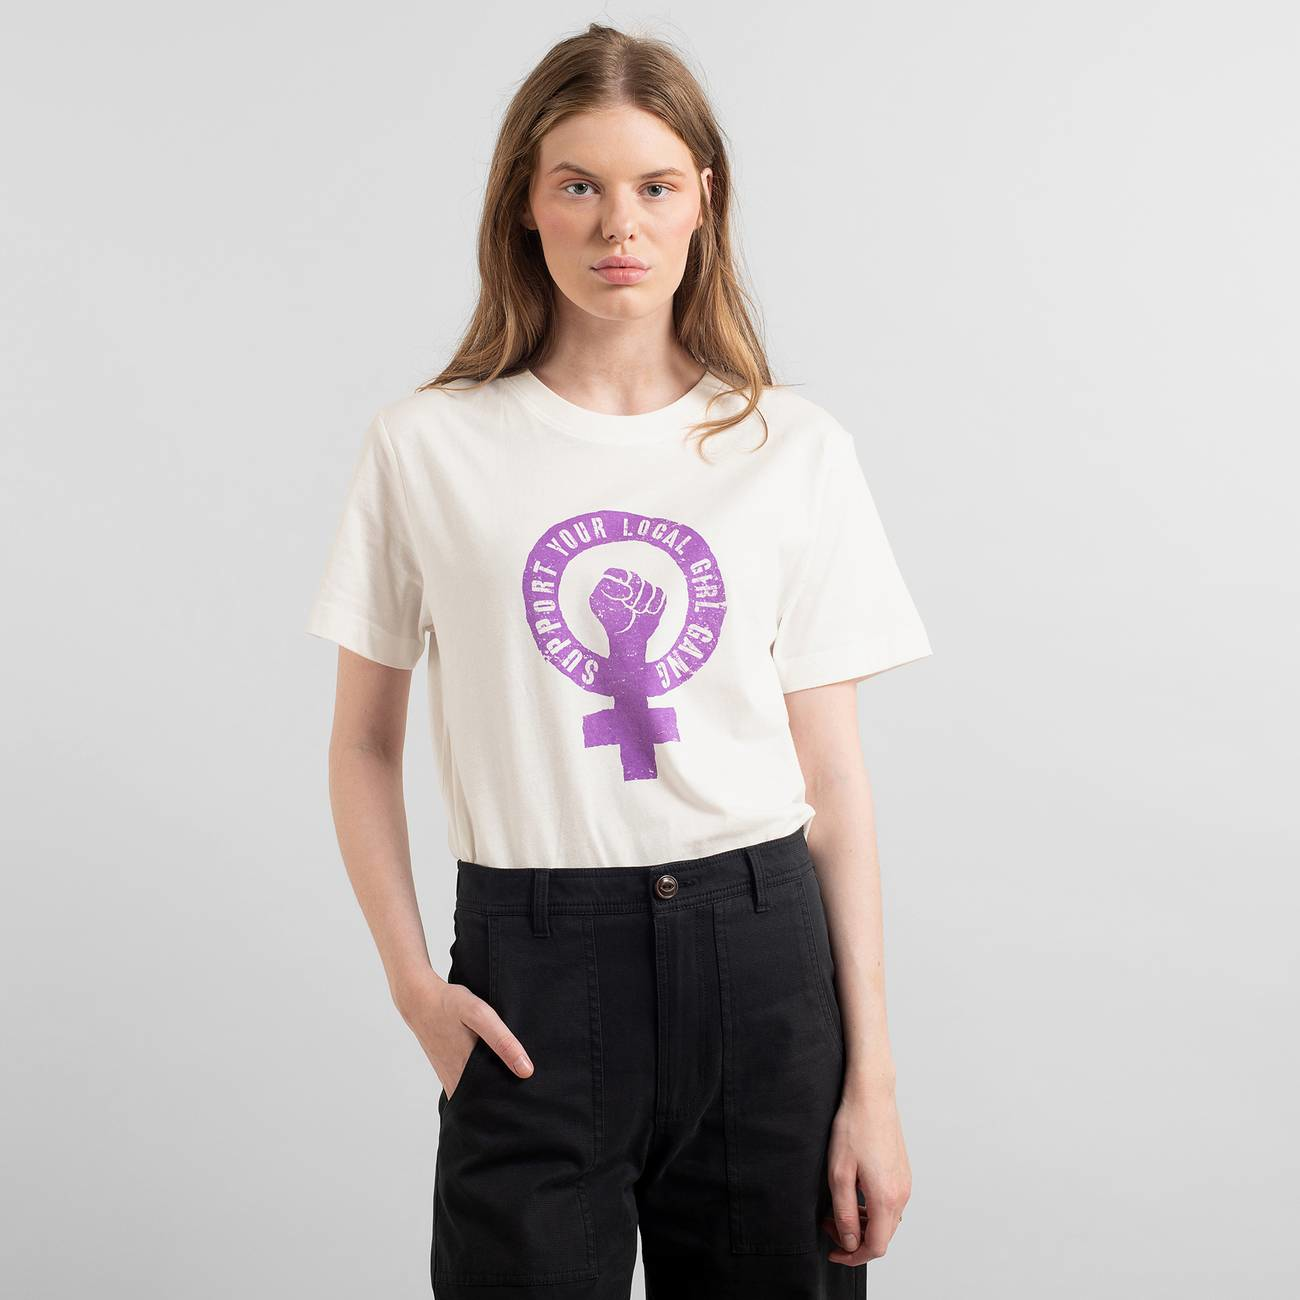 Dedicated - T-shirt Mysen Girl Gang